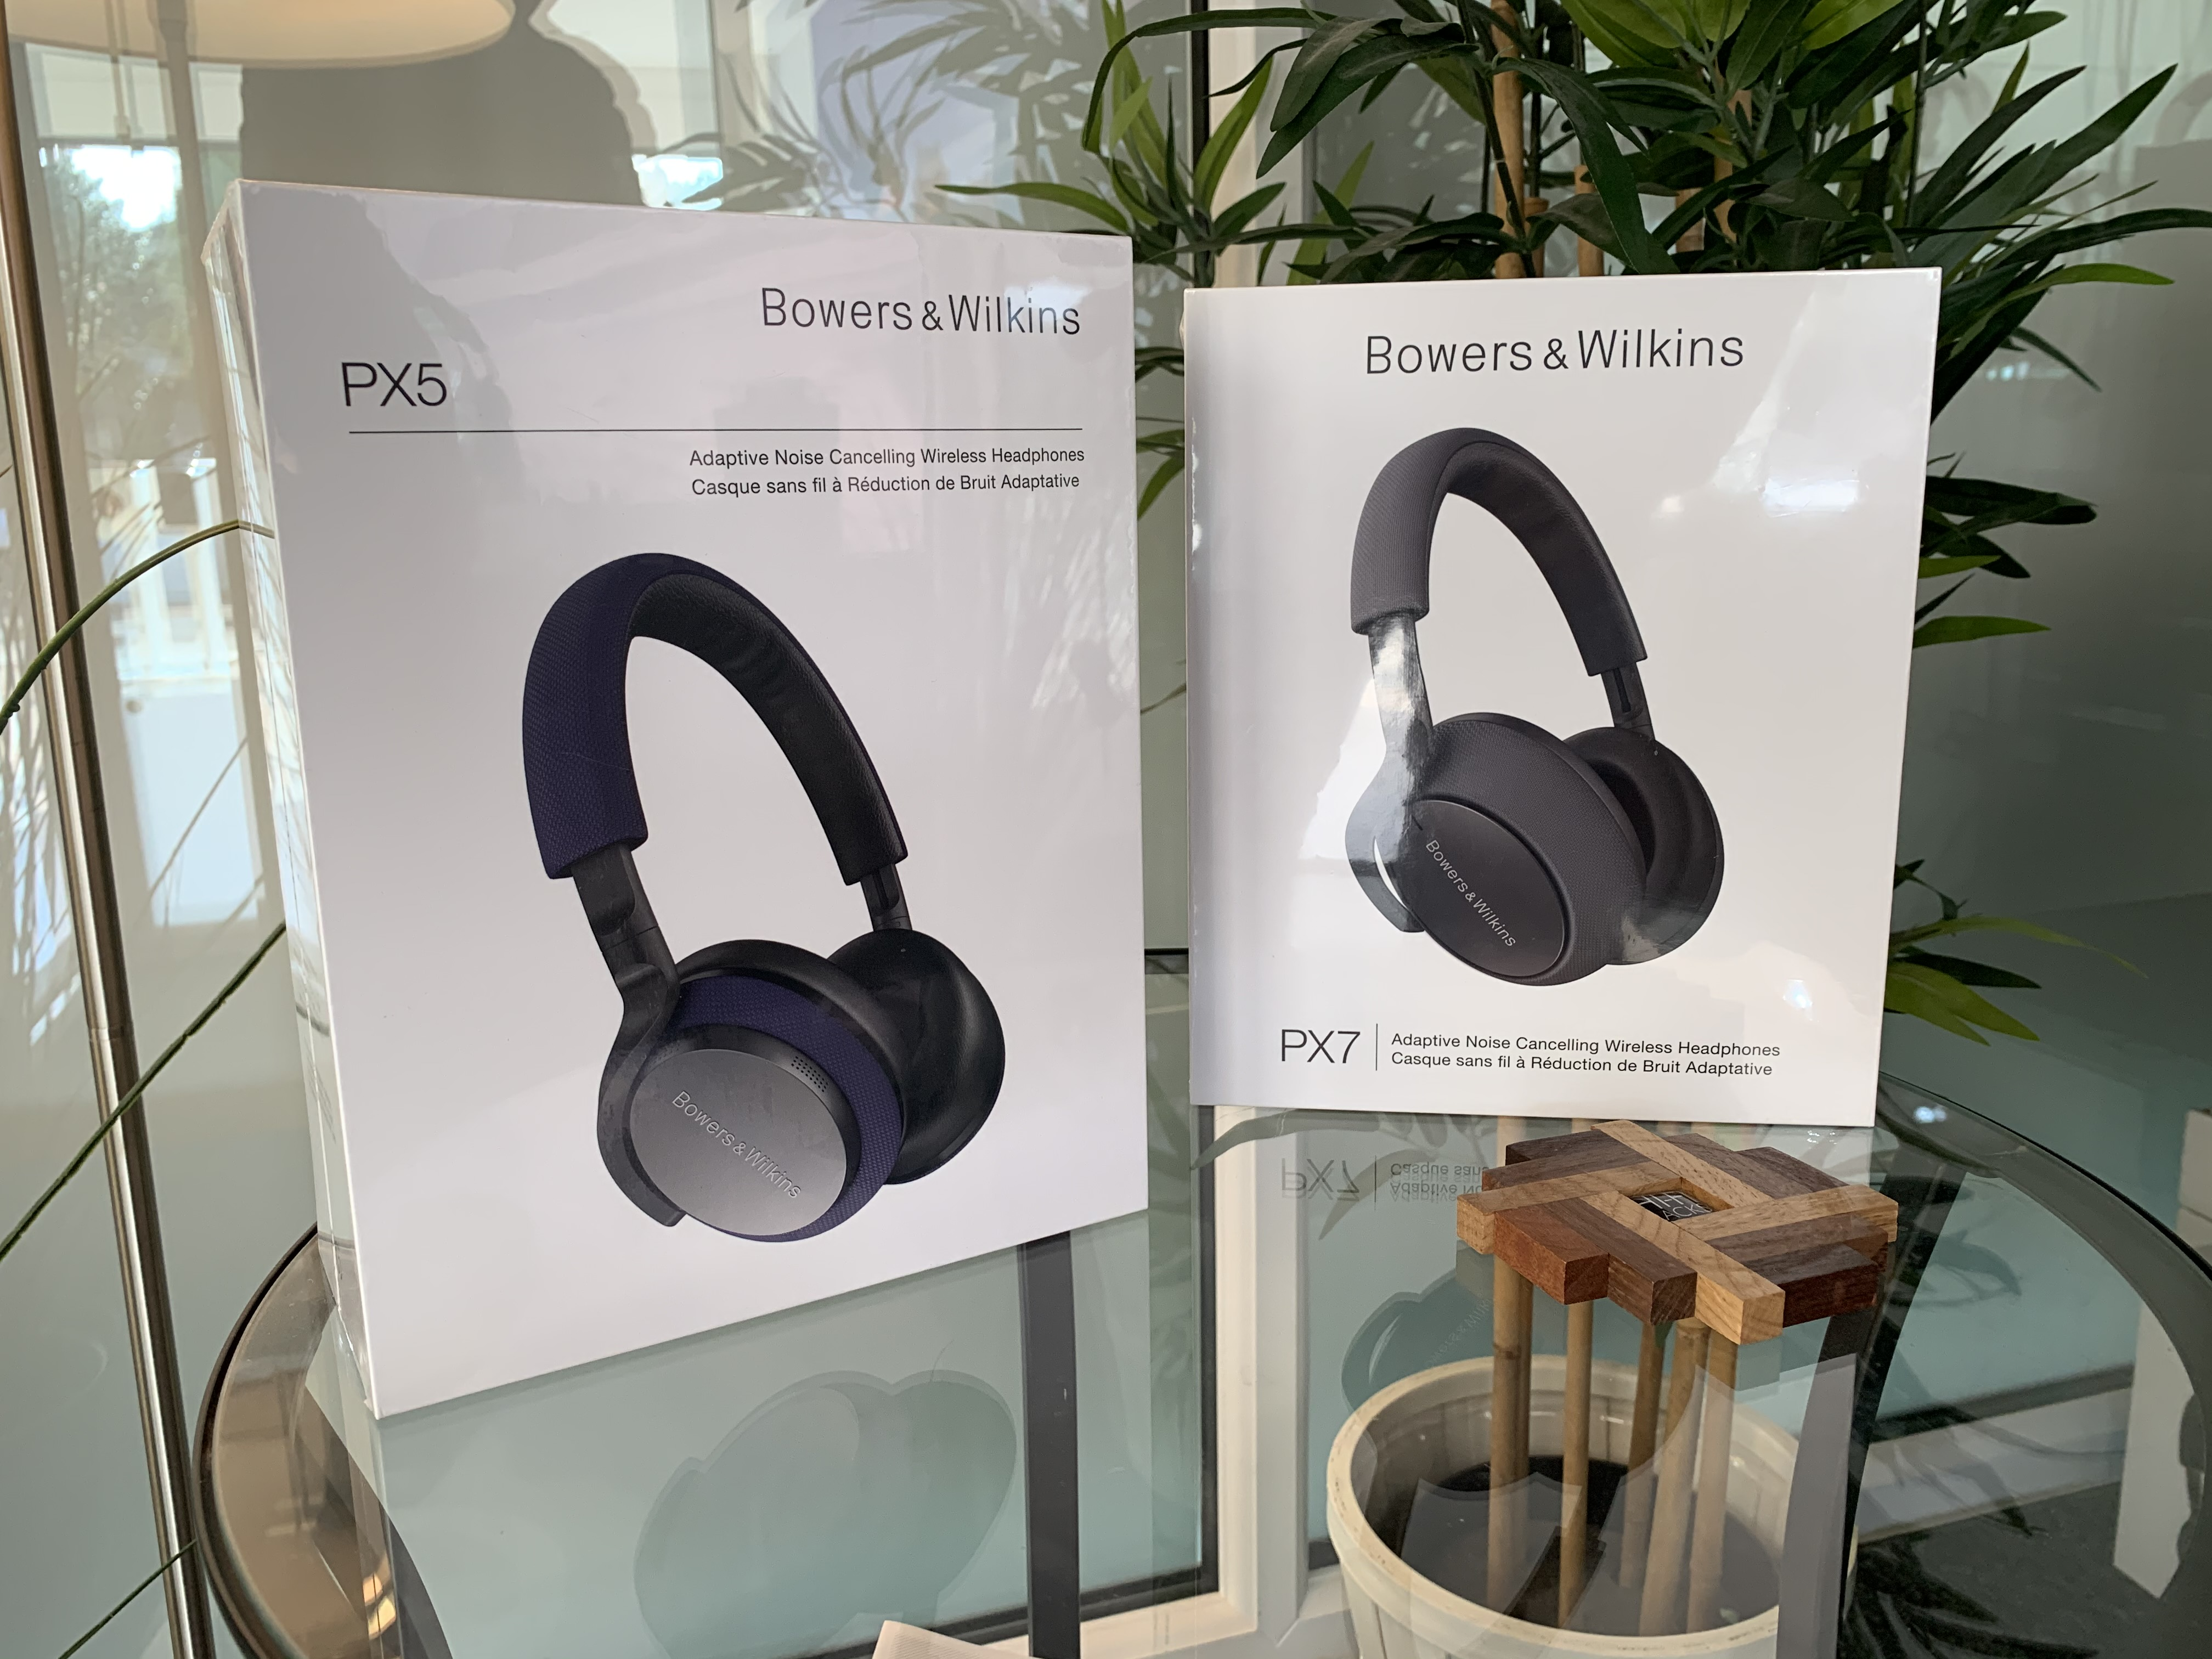 Bowers & Wilkins introduces their new and improved headphone portfolio: The PX 7, PX 5 & PI 3 !